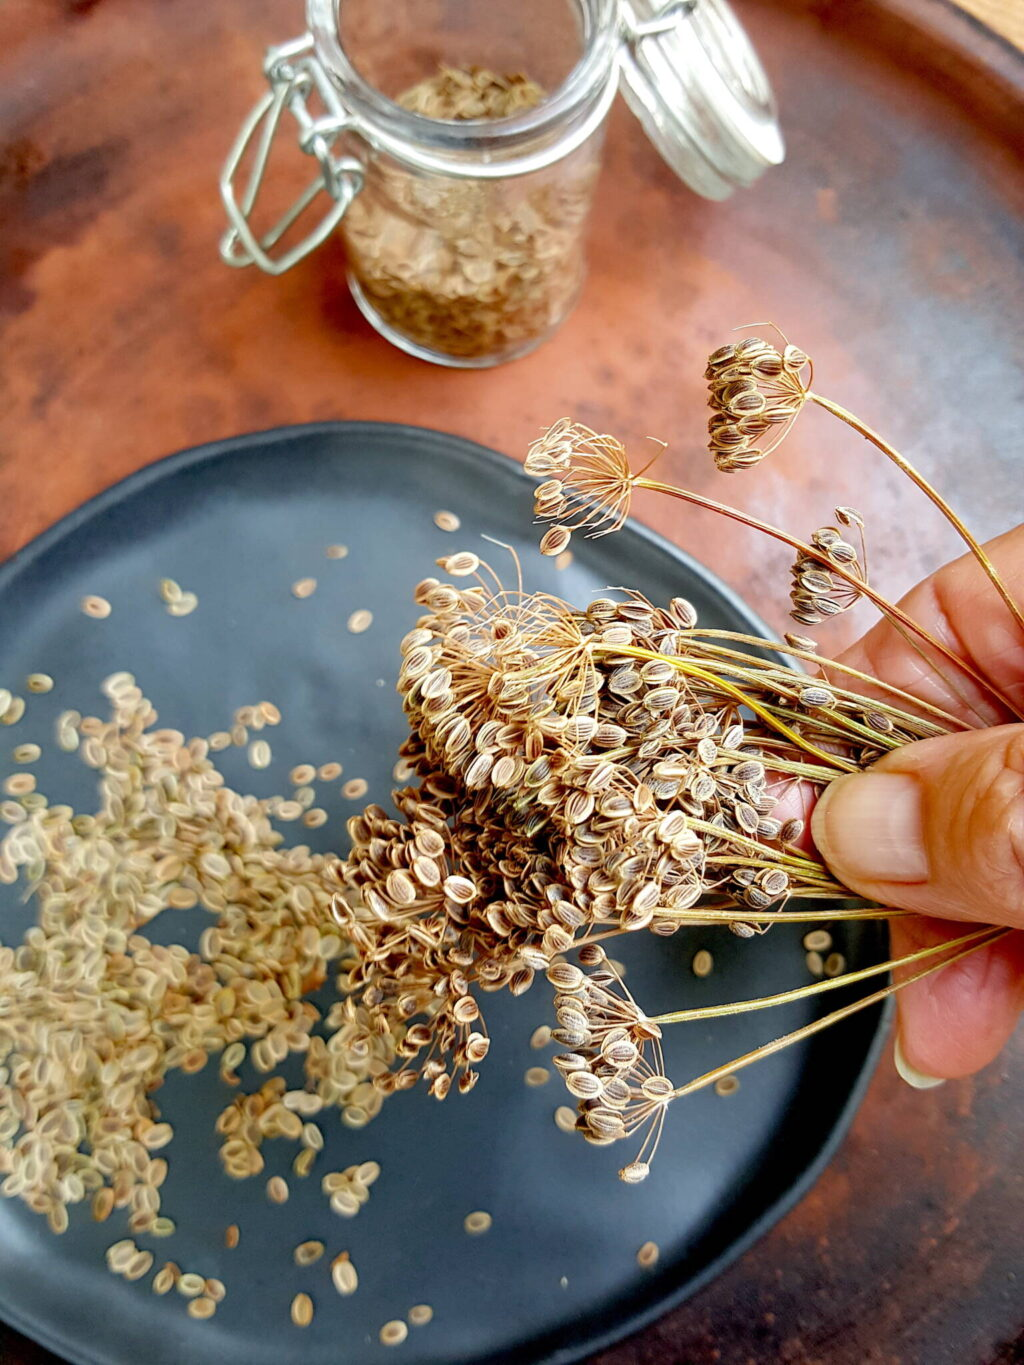 Harvesting dill seeds